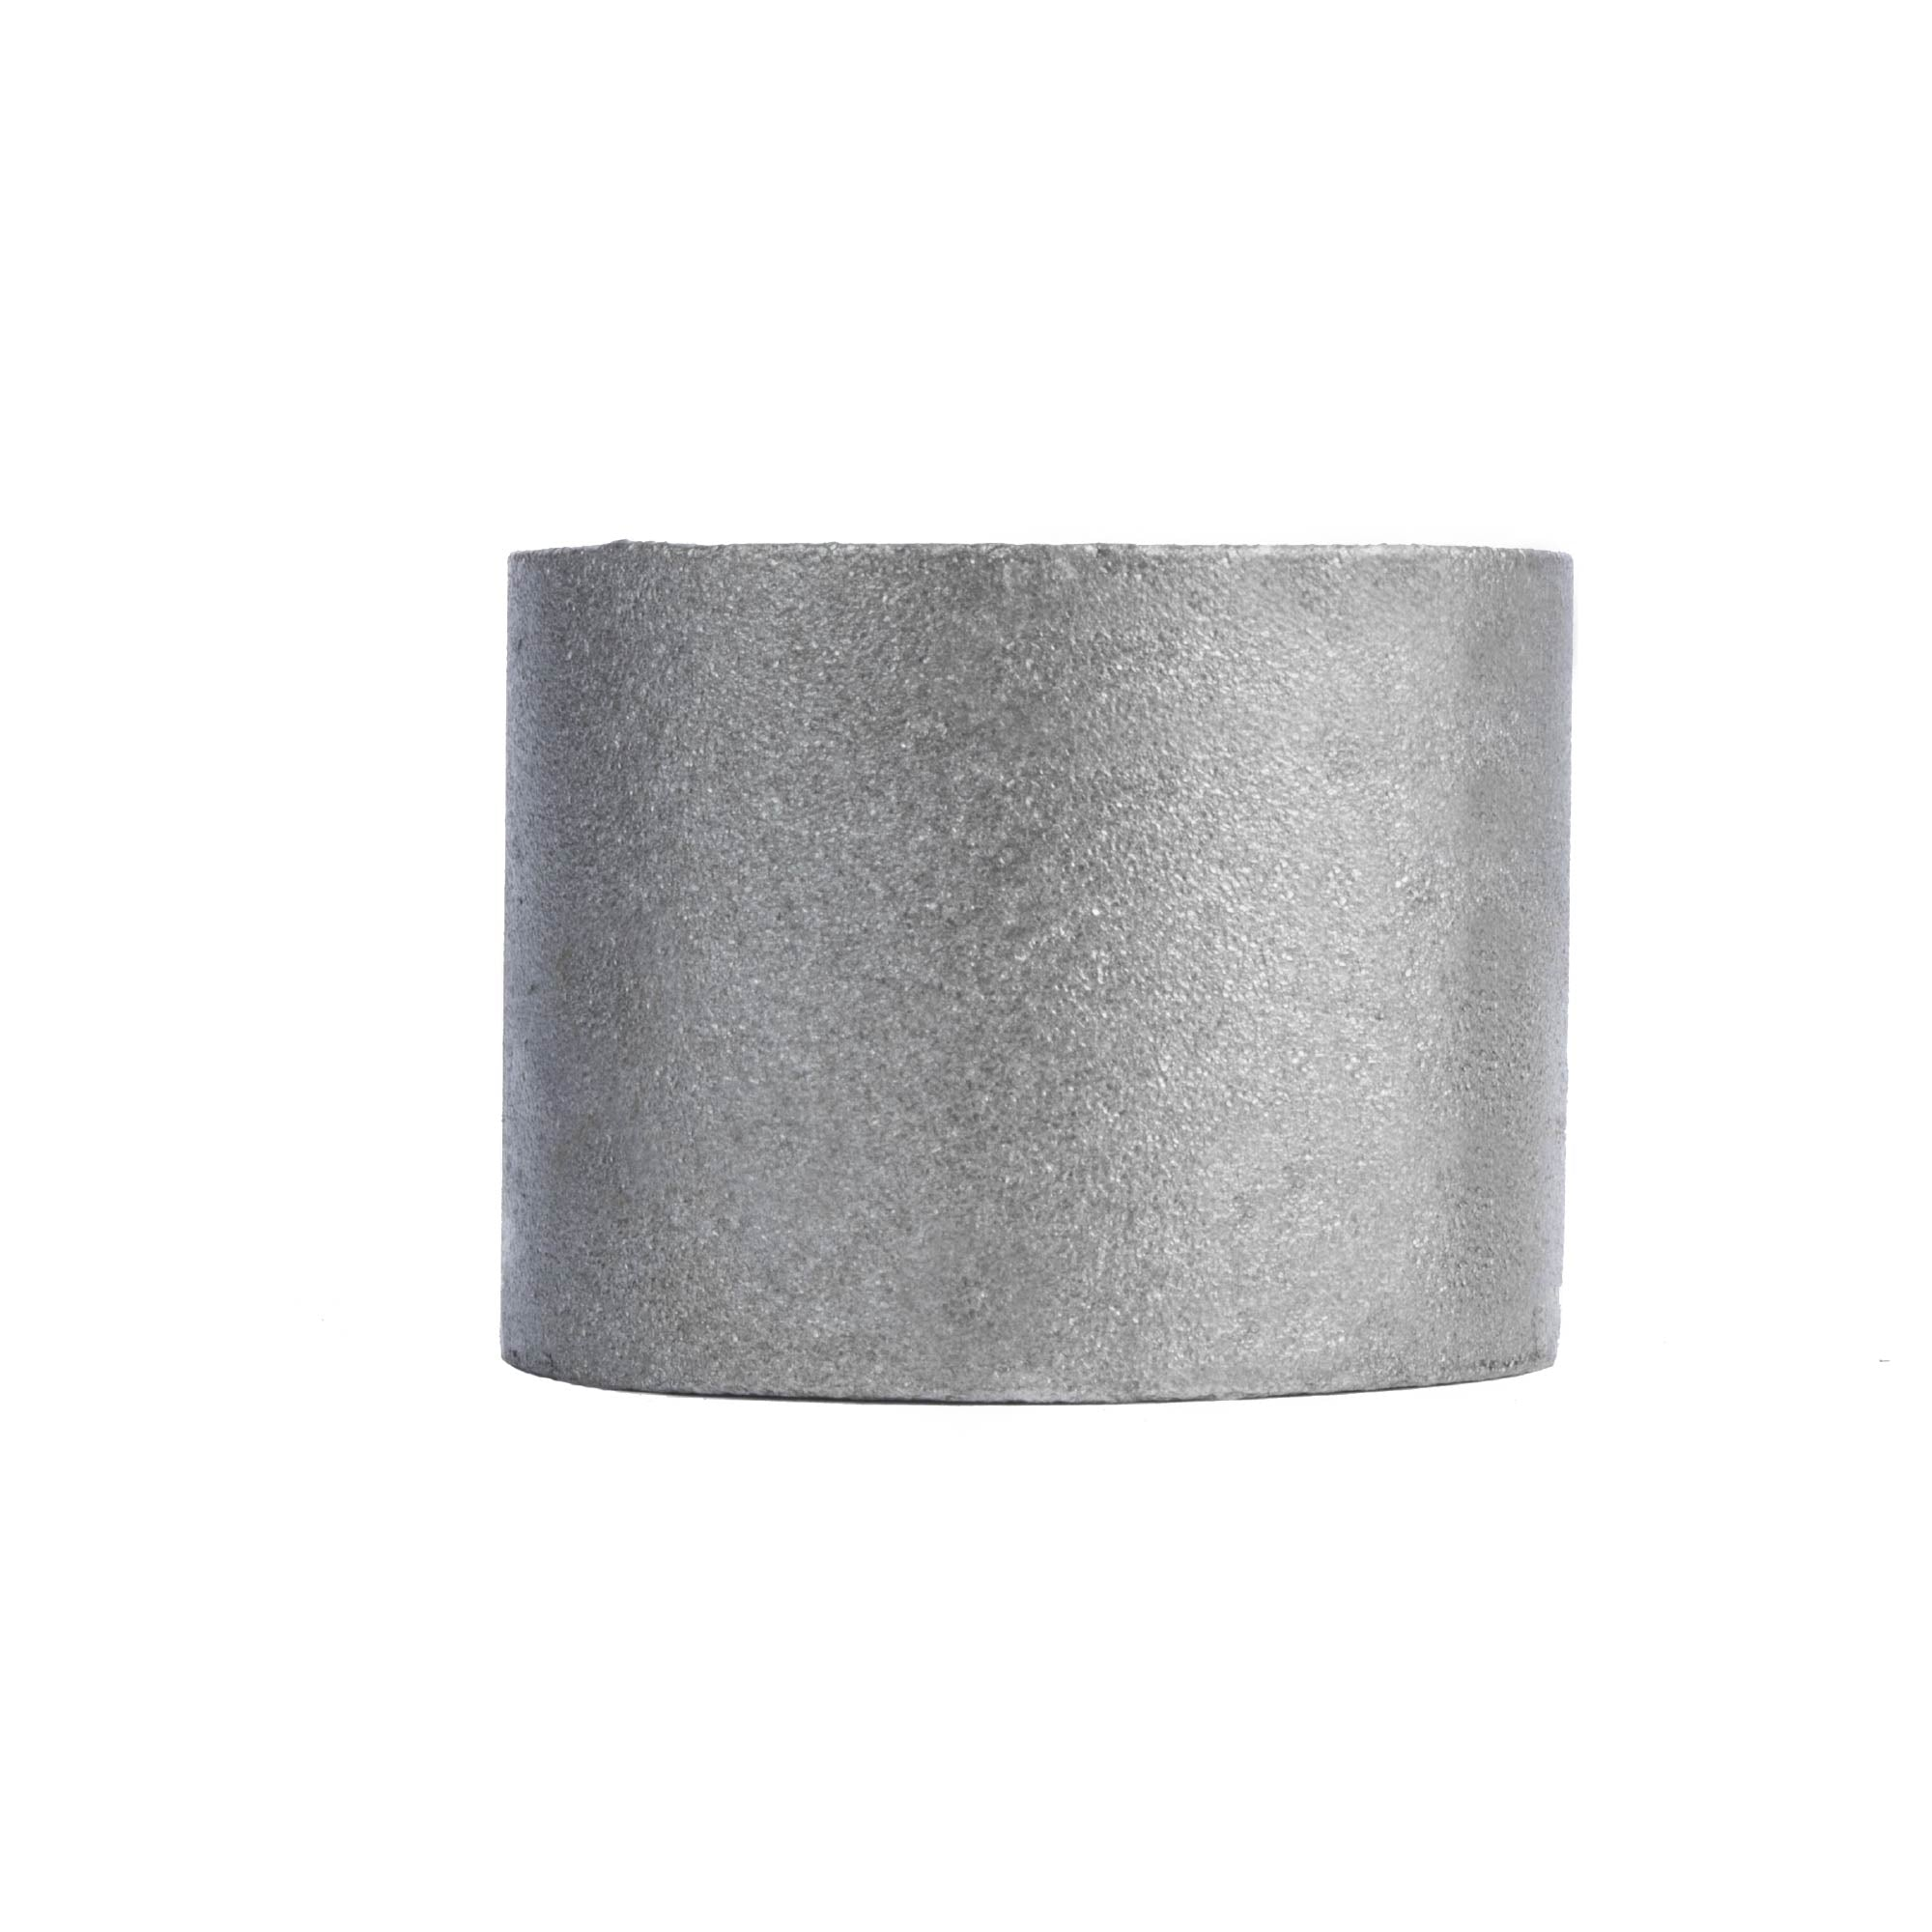 2 in. Black merch coupling - Pipe Decor